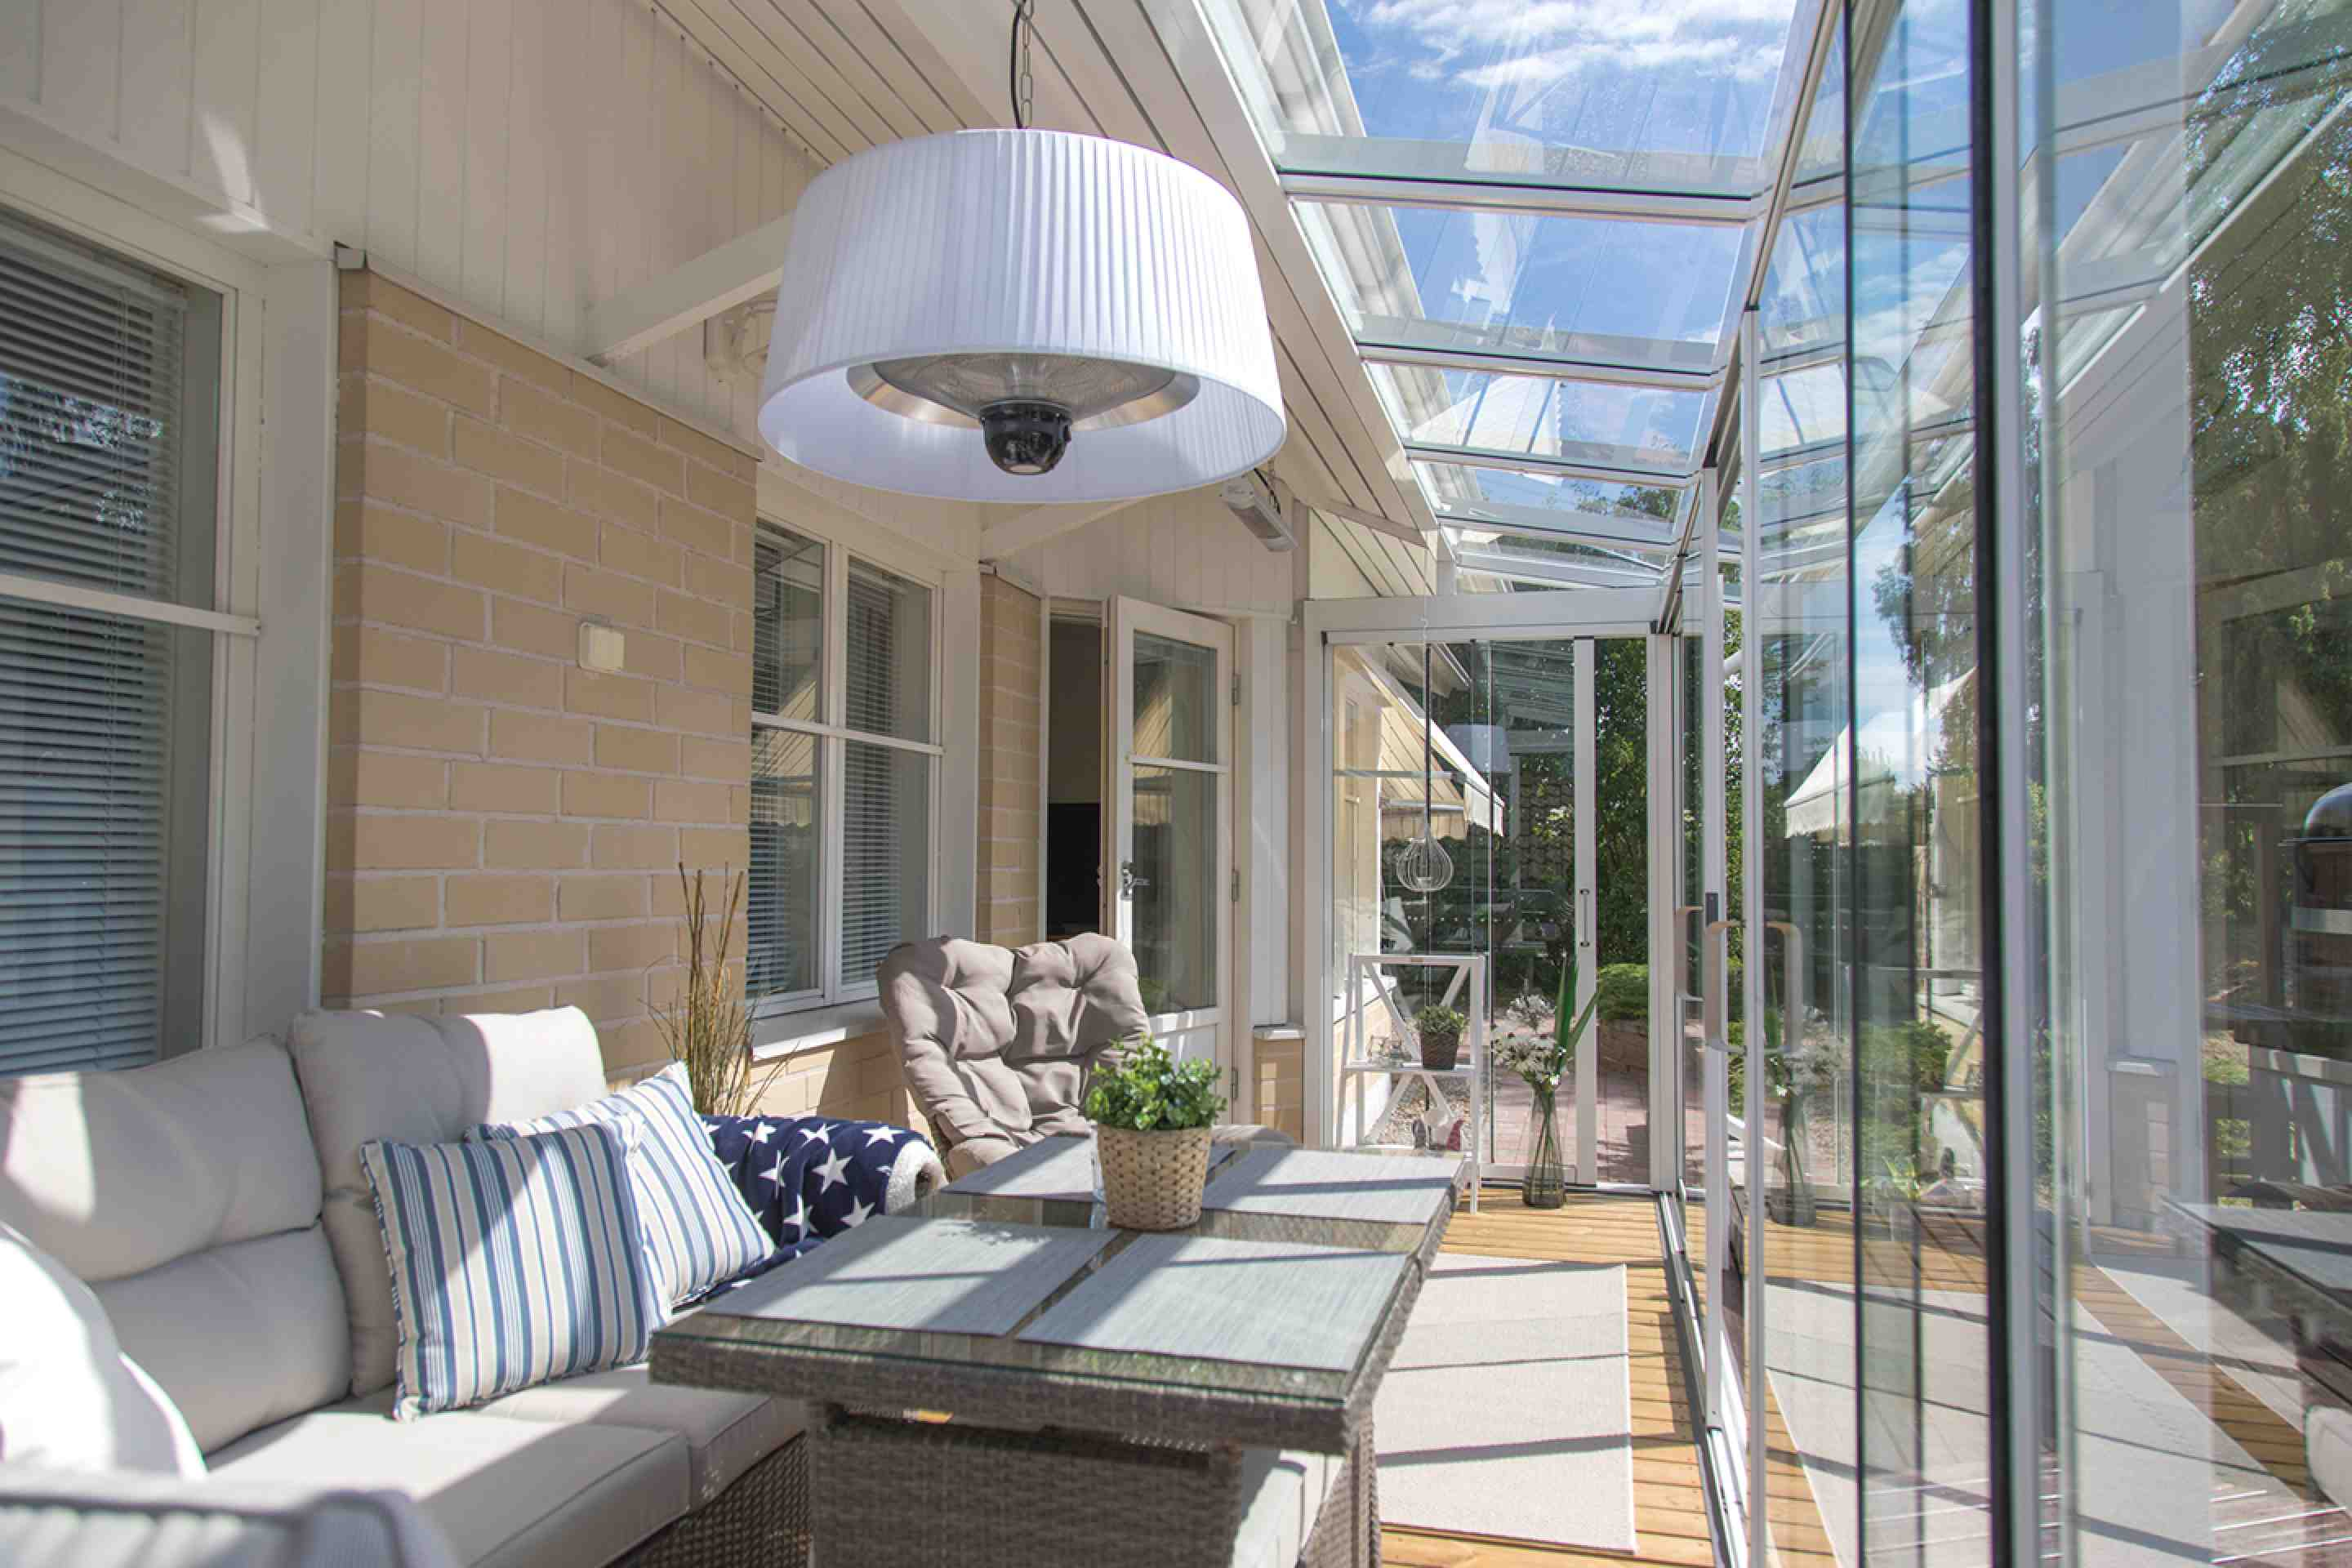 lumon canada, sunrooms, sunrooms in canada, sunrooms in toronto, sunrooms in hamilton, sunrooms in vancouver